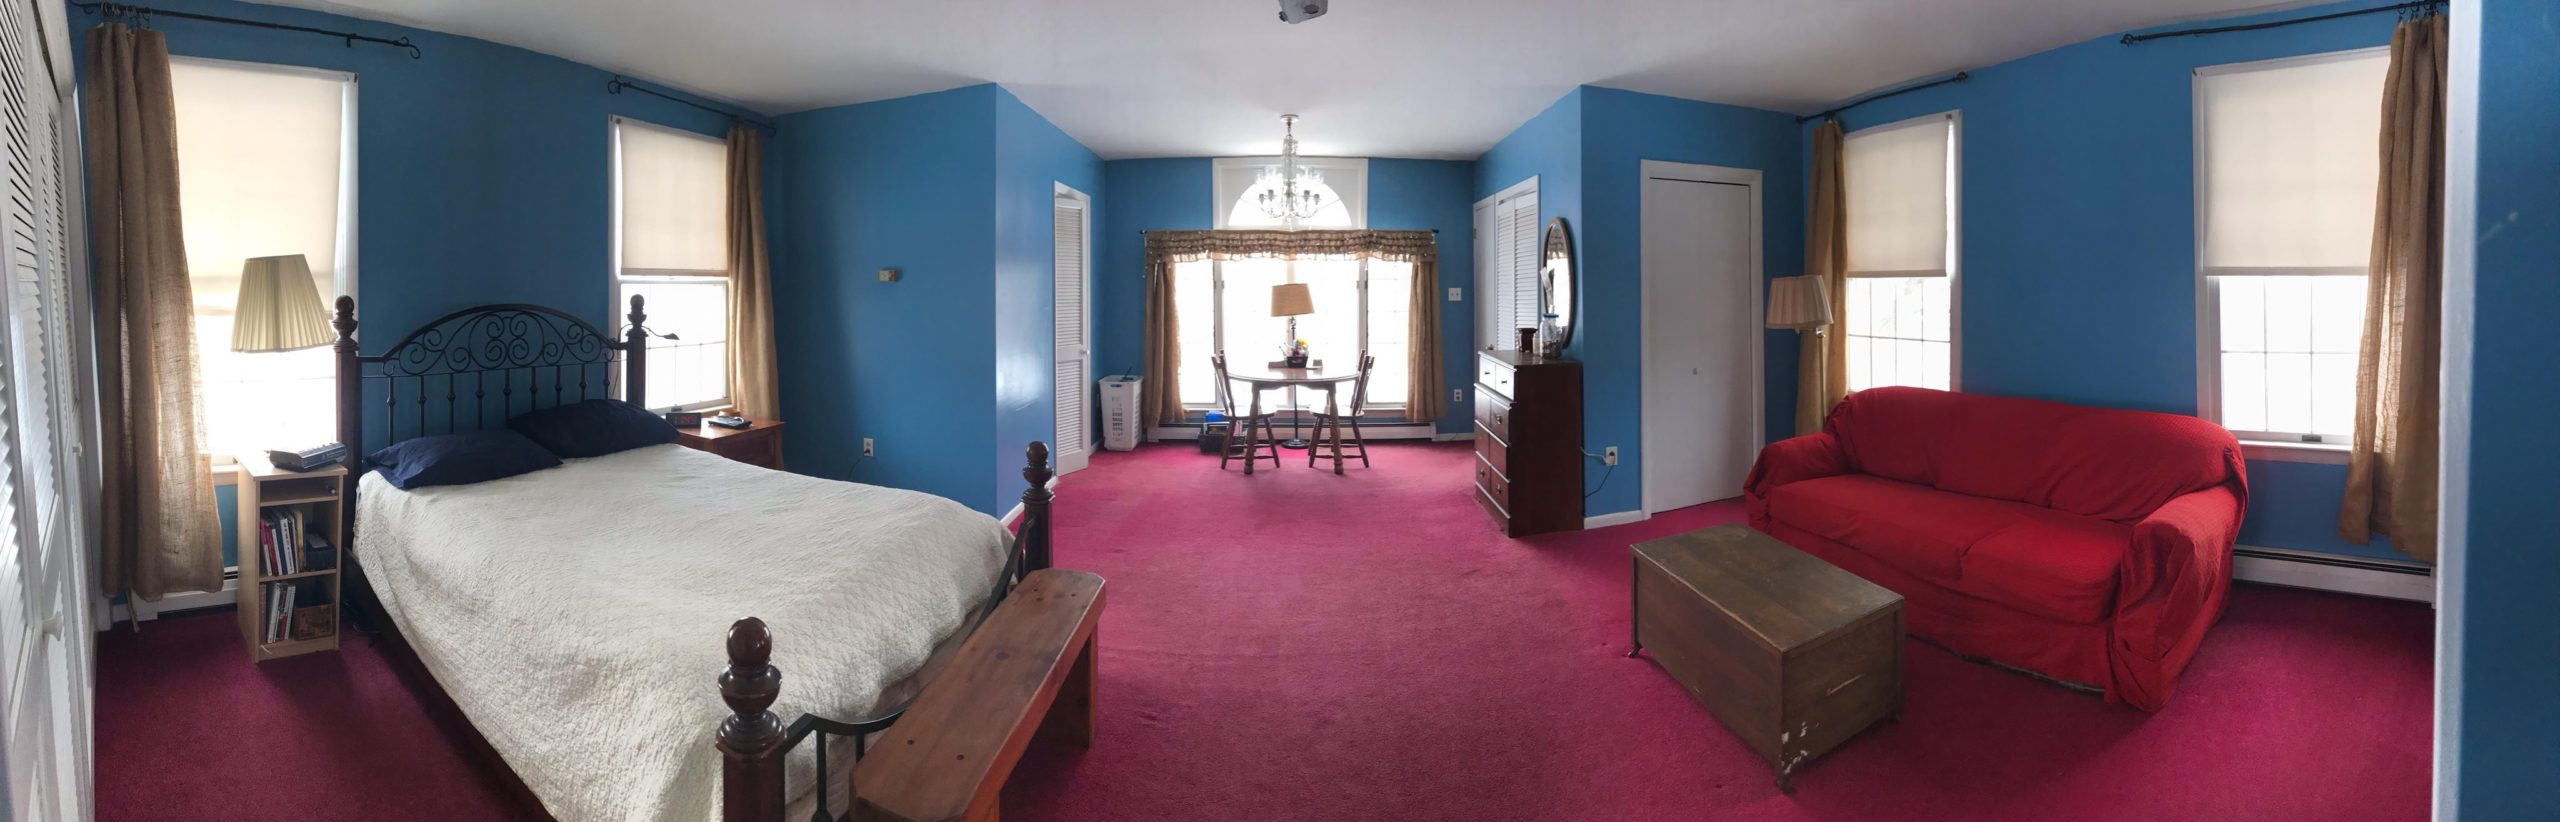 How to Simplify Your Master Bedroom